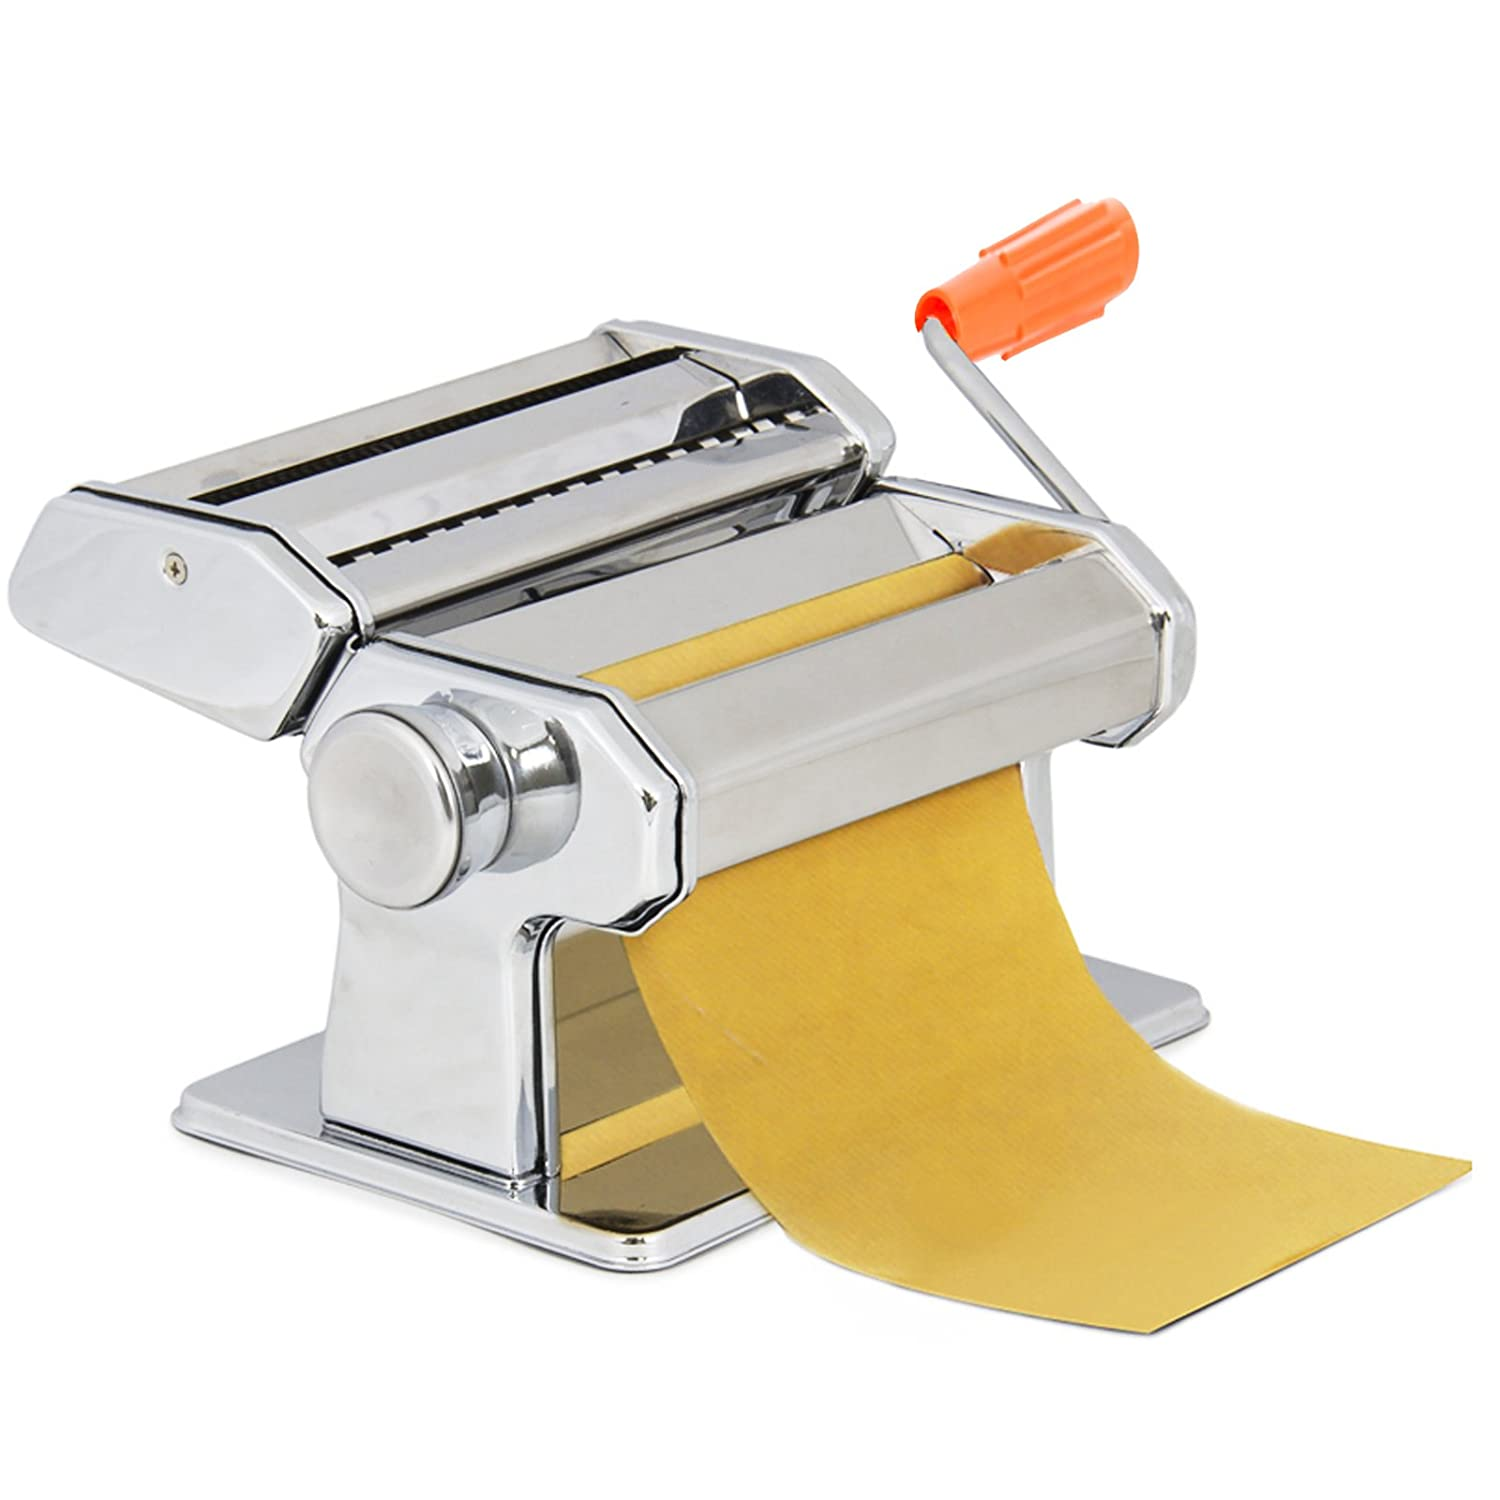 Busyall Fresh Pasta Maker, Stainless Steel 7-Inch Roller Machine Cutter for Spaghetti Noodle